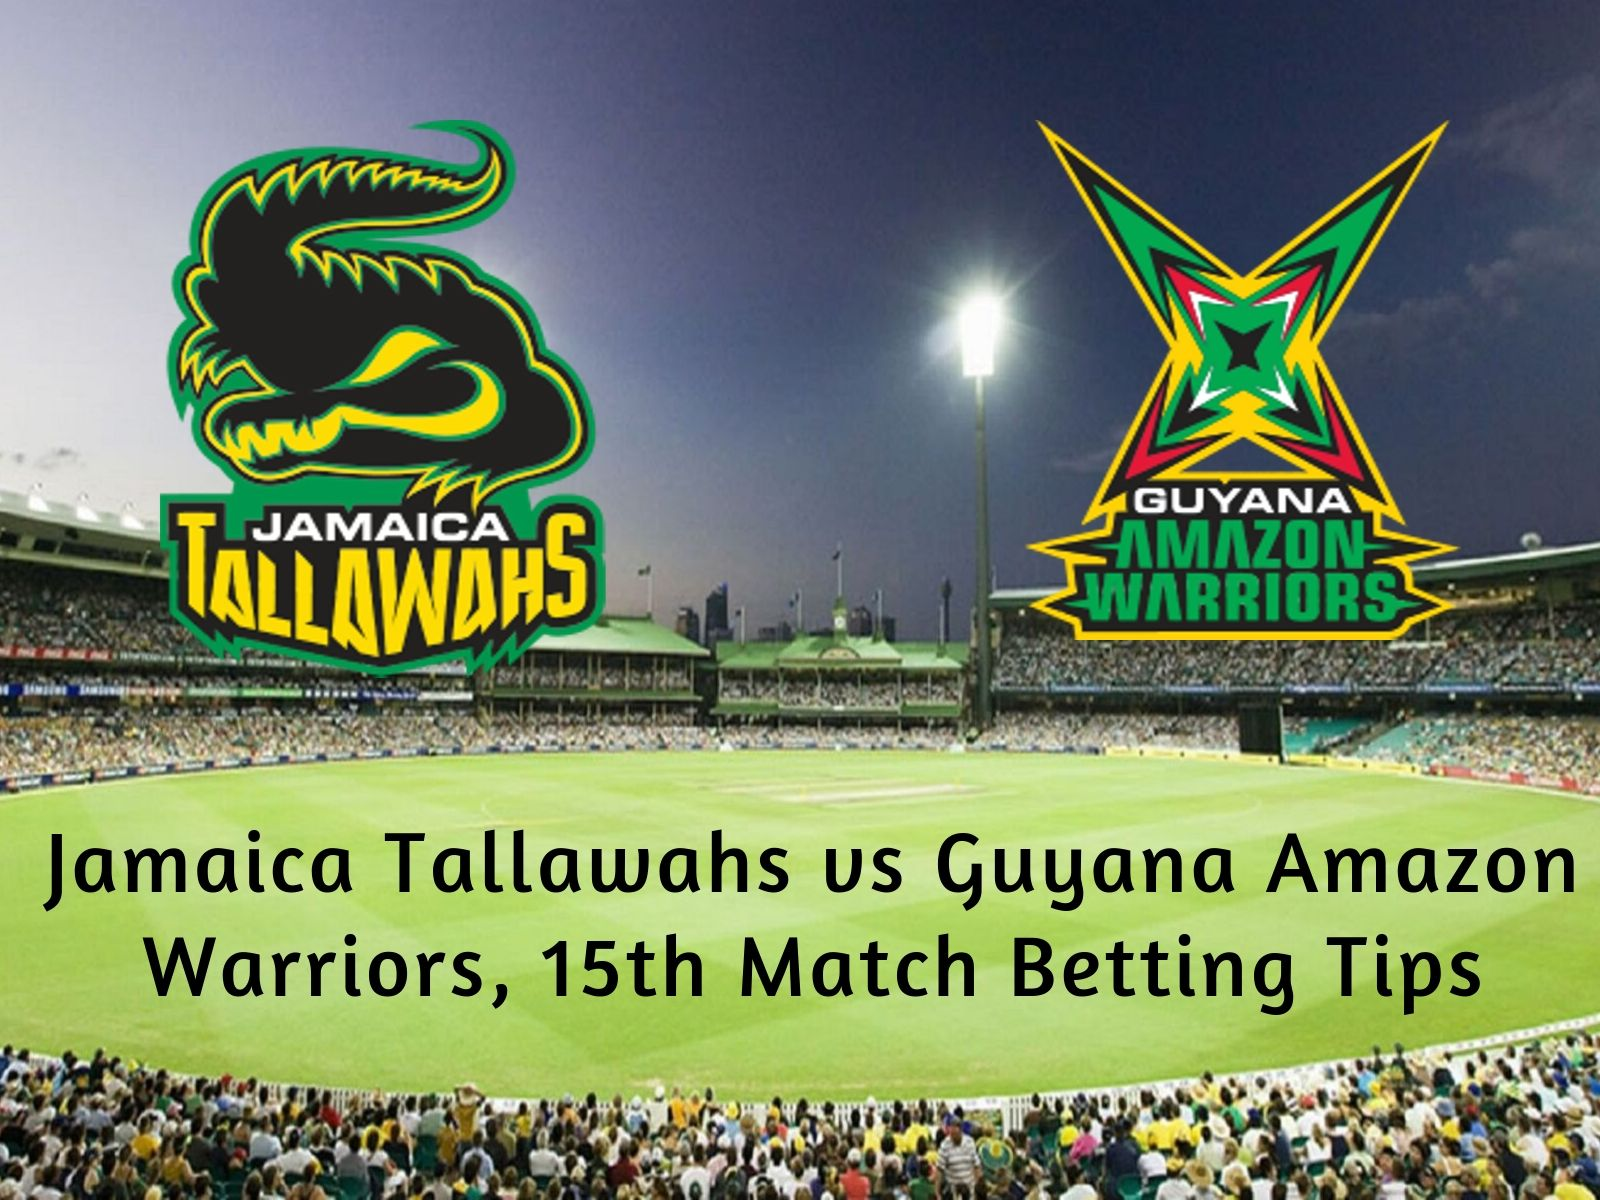 Jamaica Tallawahs vs Guyana Amazon Warriors, 15th Match Betting Tips